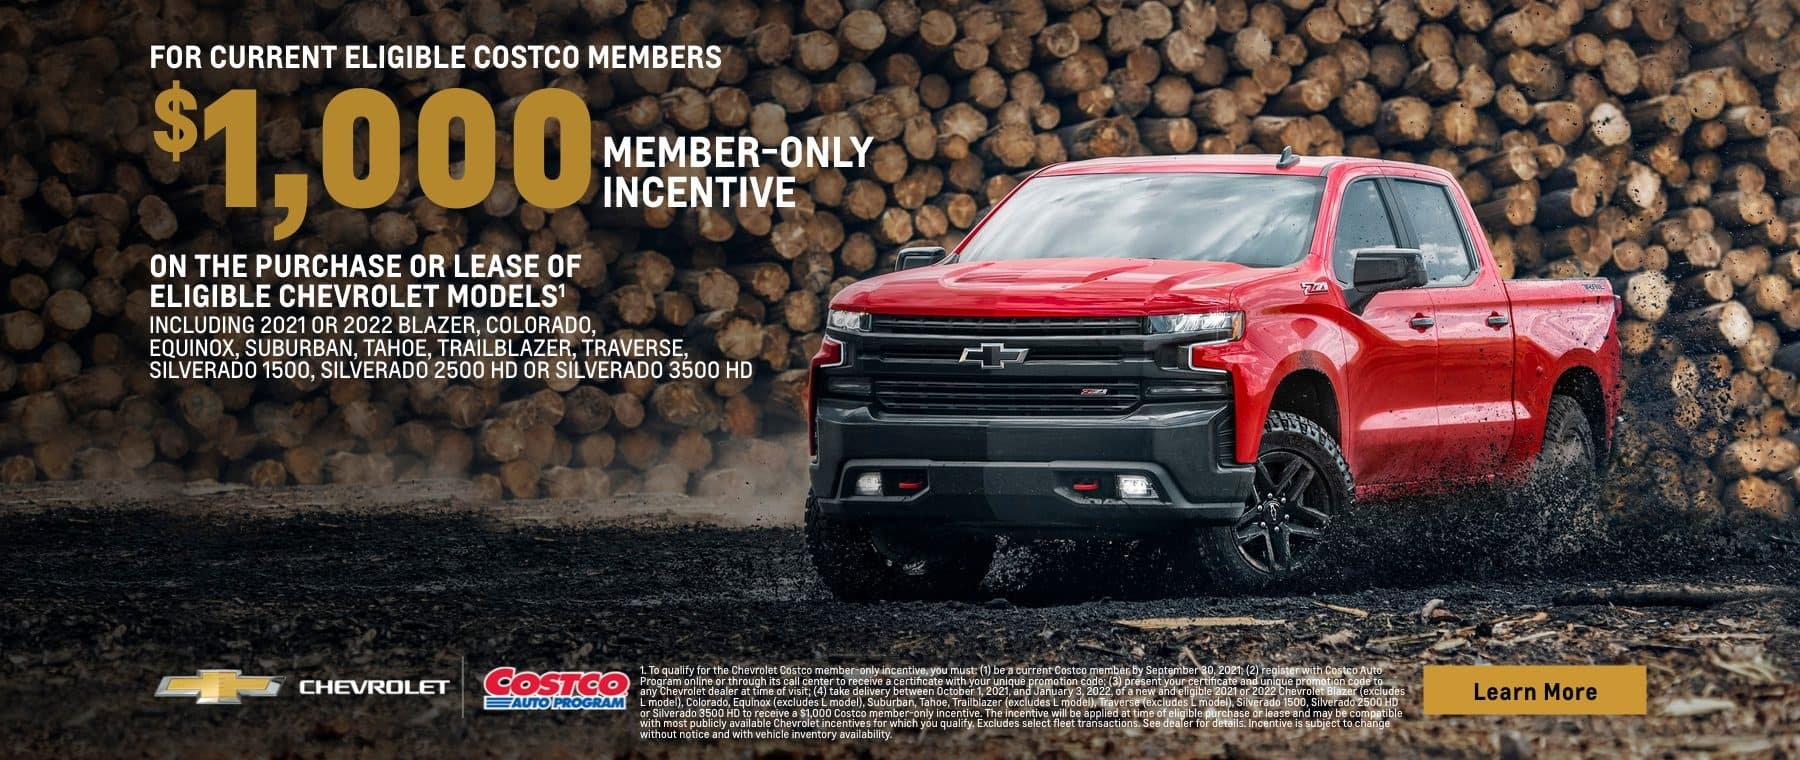 For current eligible costco members $1,000 member-only incentive on the purchase or lease of eligible Chevrolet models